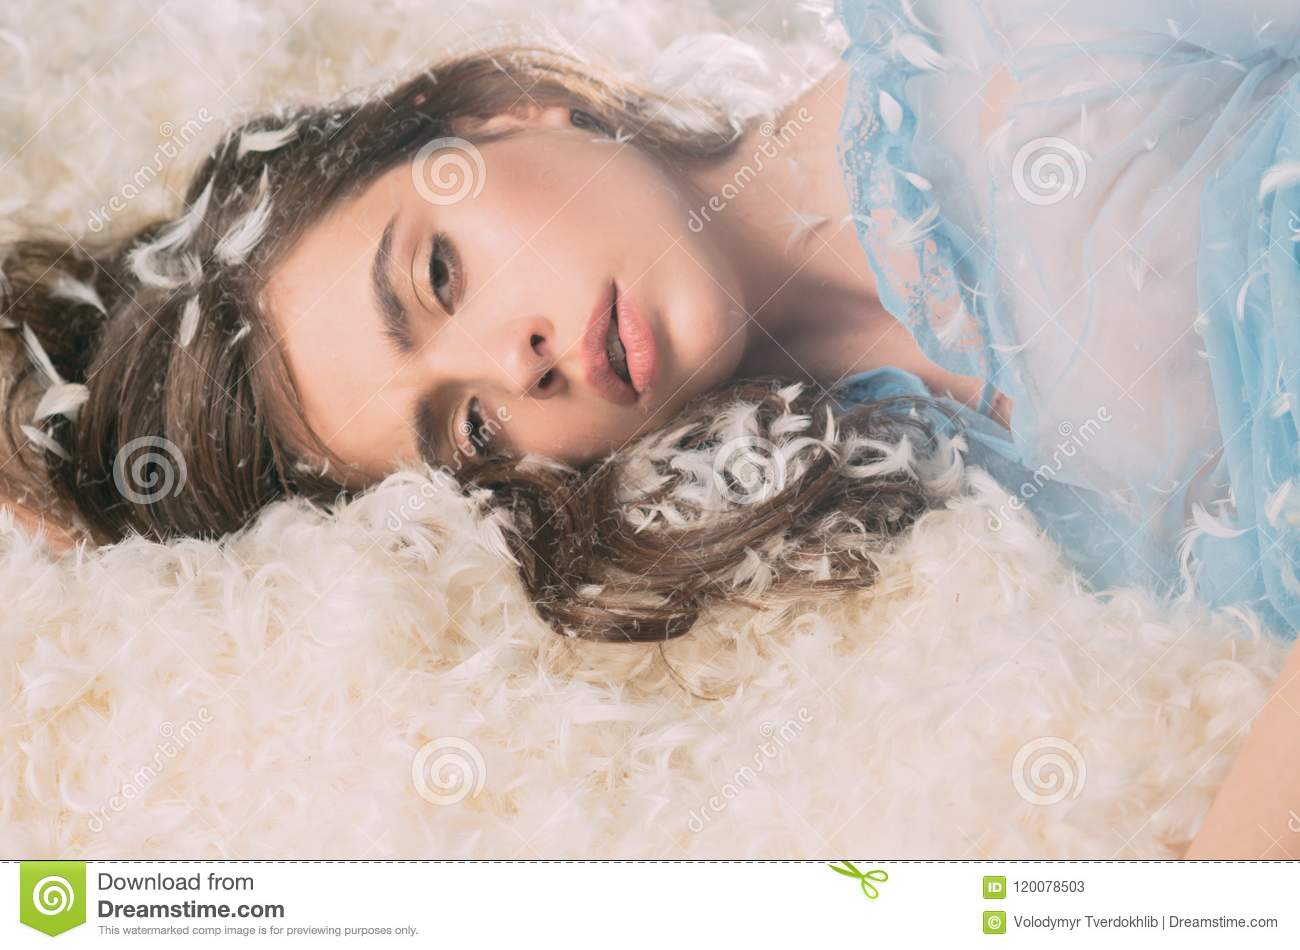 Beautiful girl drowning in soft bed. Drowsy young lady falling asleep, resting on downy white feathers, coziness concept